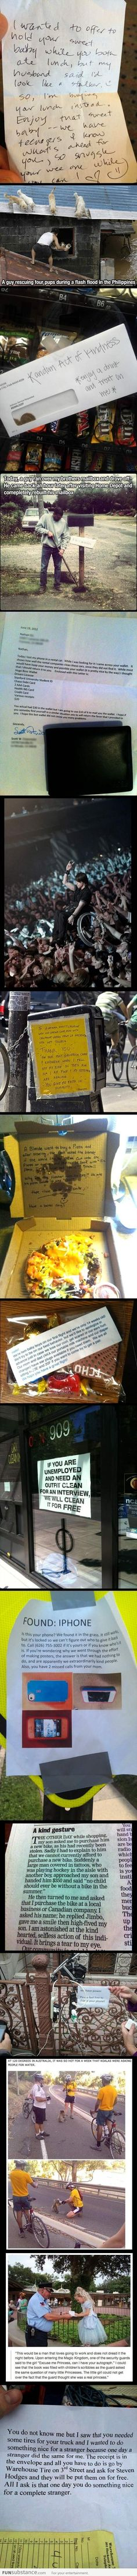 16 Unbelievable Acts Of Kindness. There's still hope in the world!